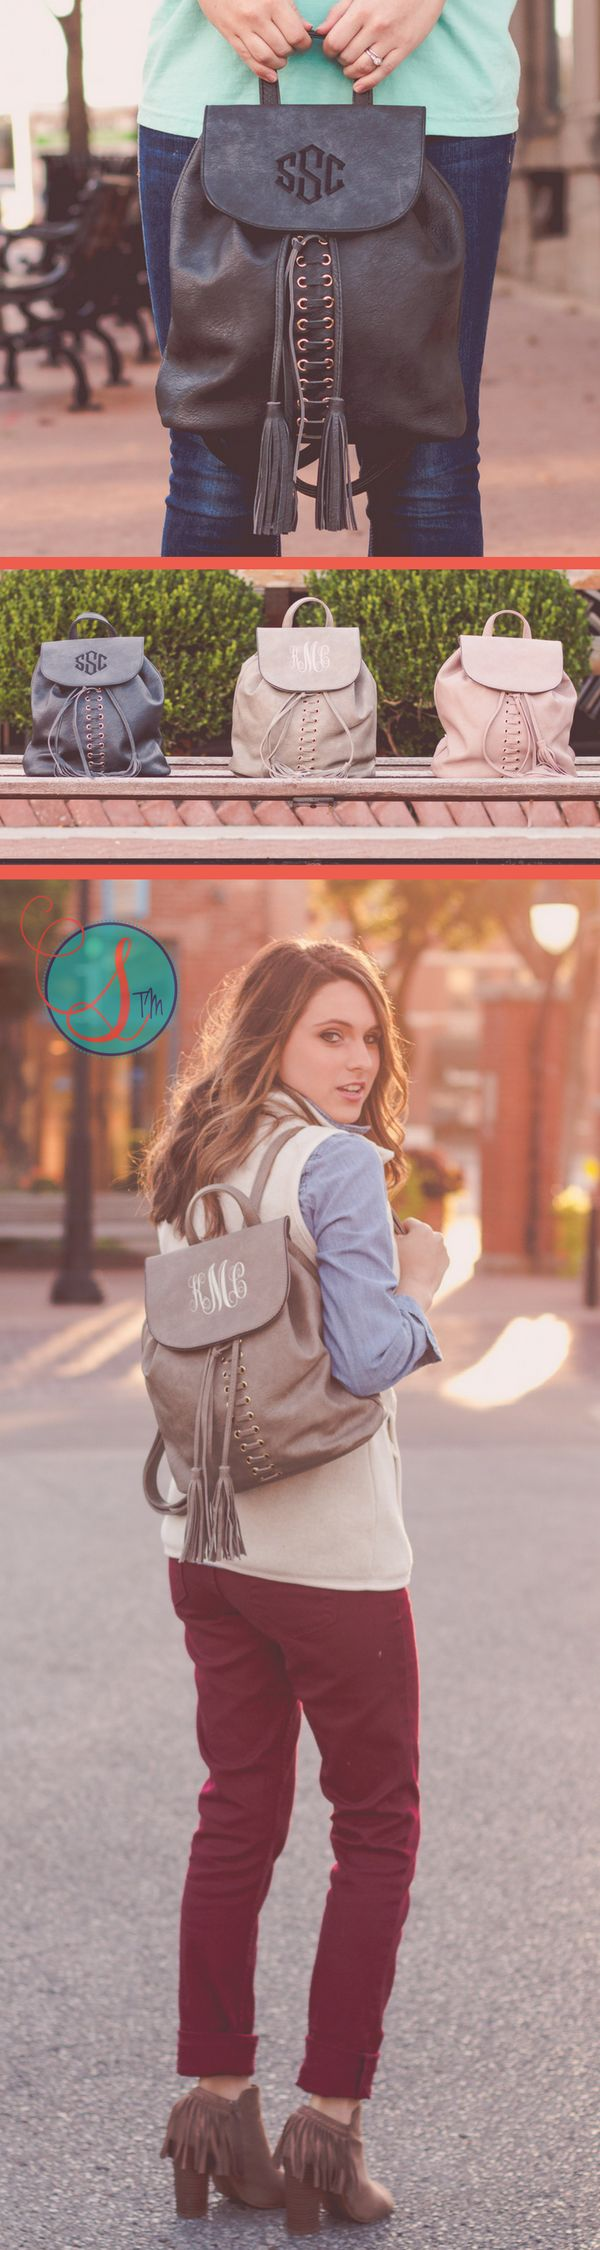 Faux Leather Monogrammed Mini Backpack Purse | Monogrammed Mini Backpack | Mini Rucksack | Monogrammed Gift | Gifts for Her ||  Add an element of fun to any outfit with this year's hottest fashion craze. Our monogrammed mini backpack purse is a popular gift for the girl who has everything (and wants to take it all with her)!